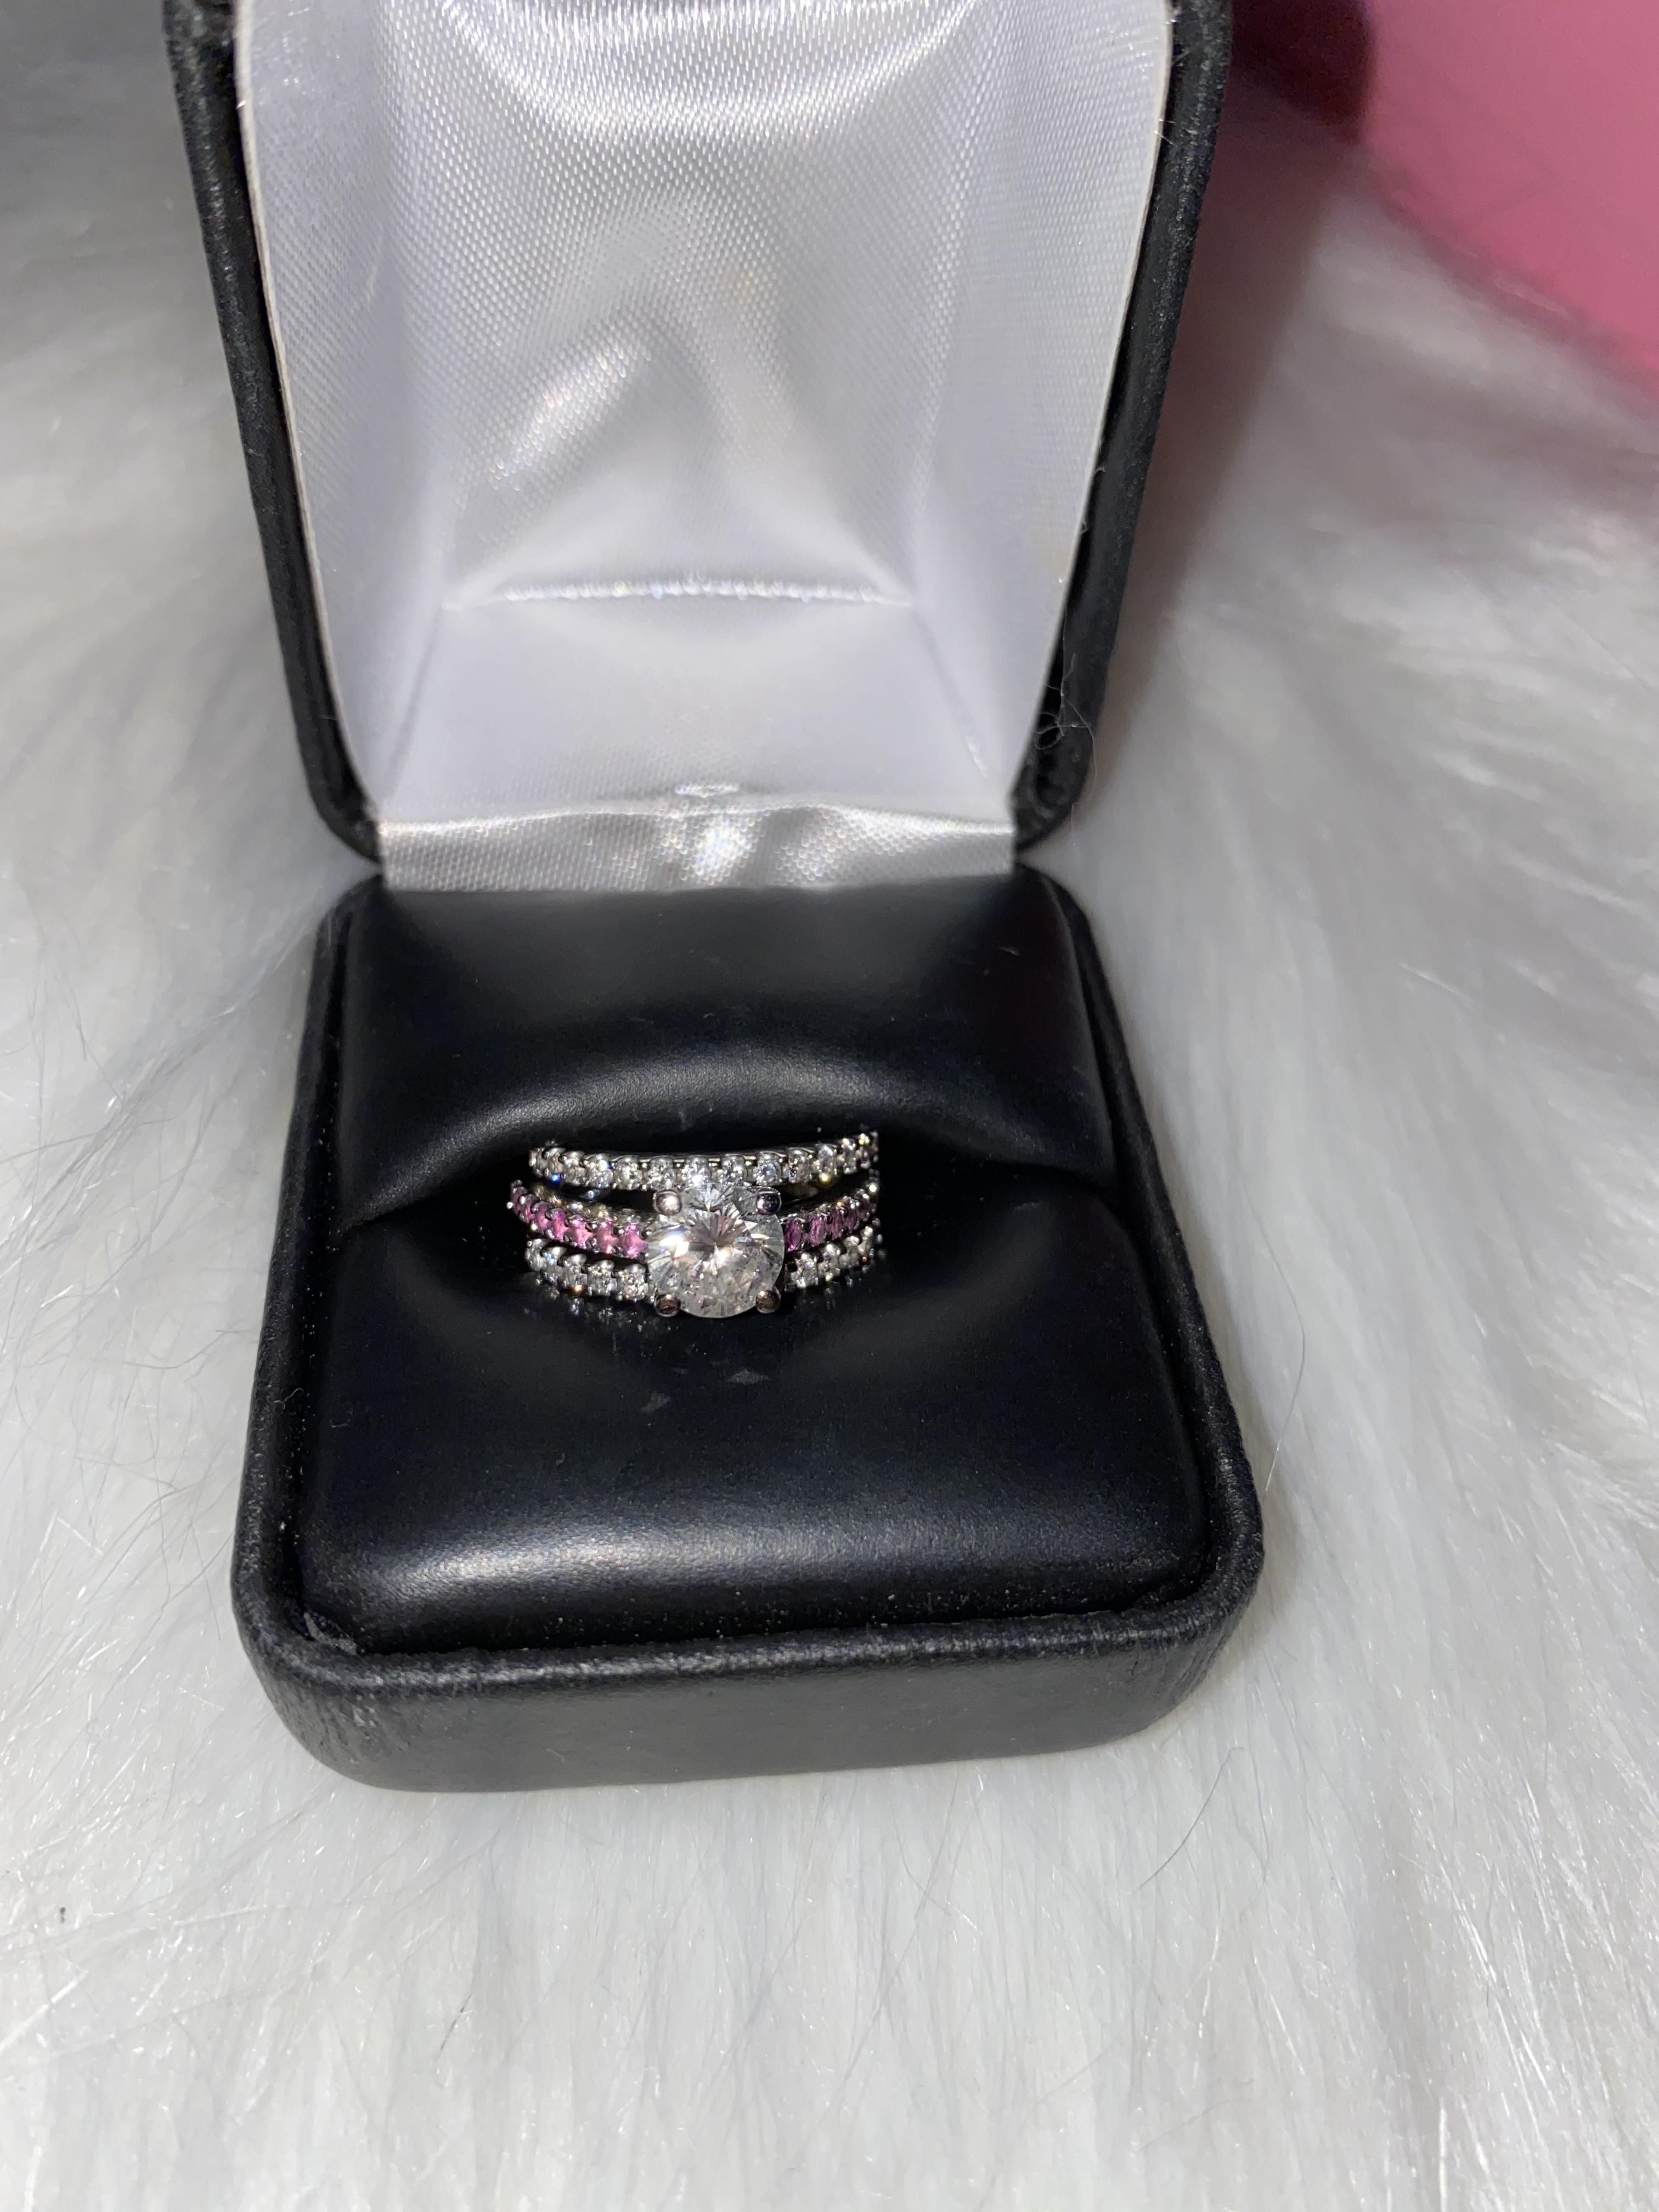 Engagement ring with pink